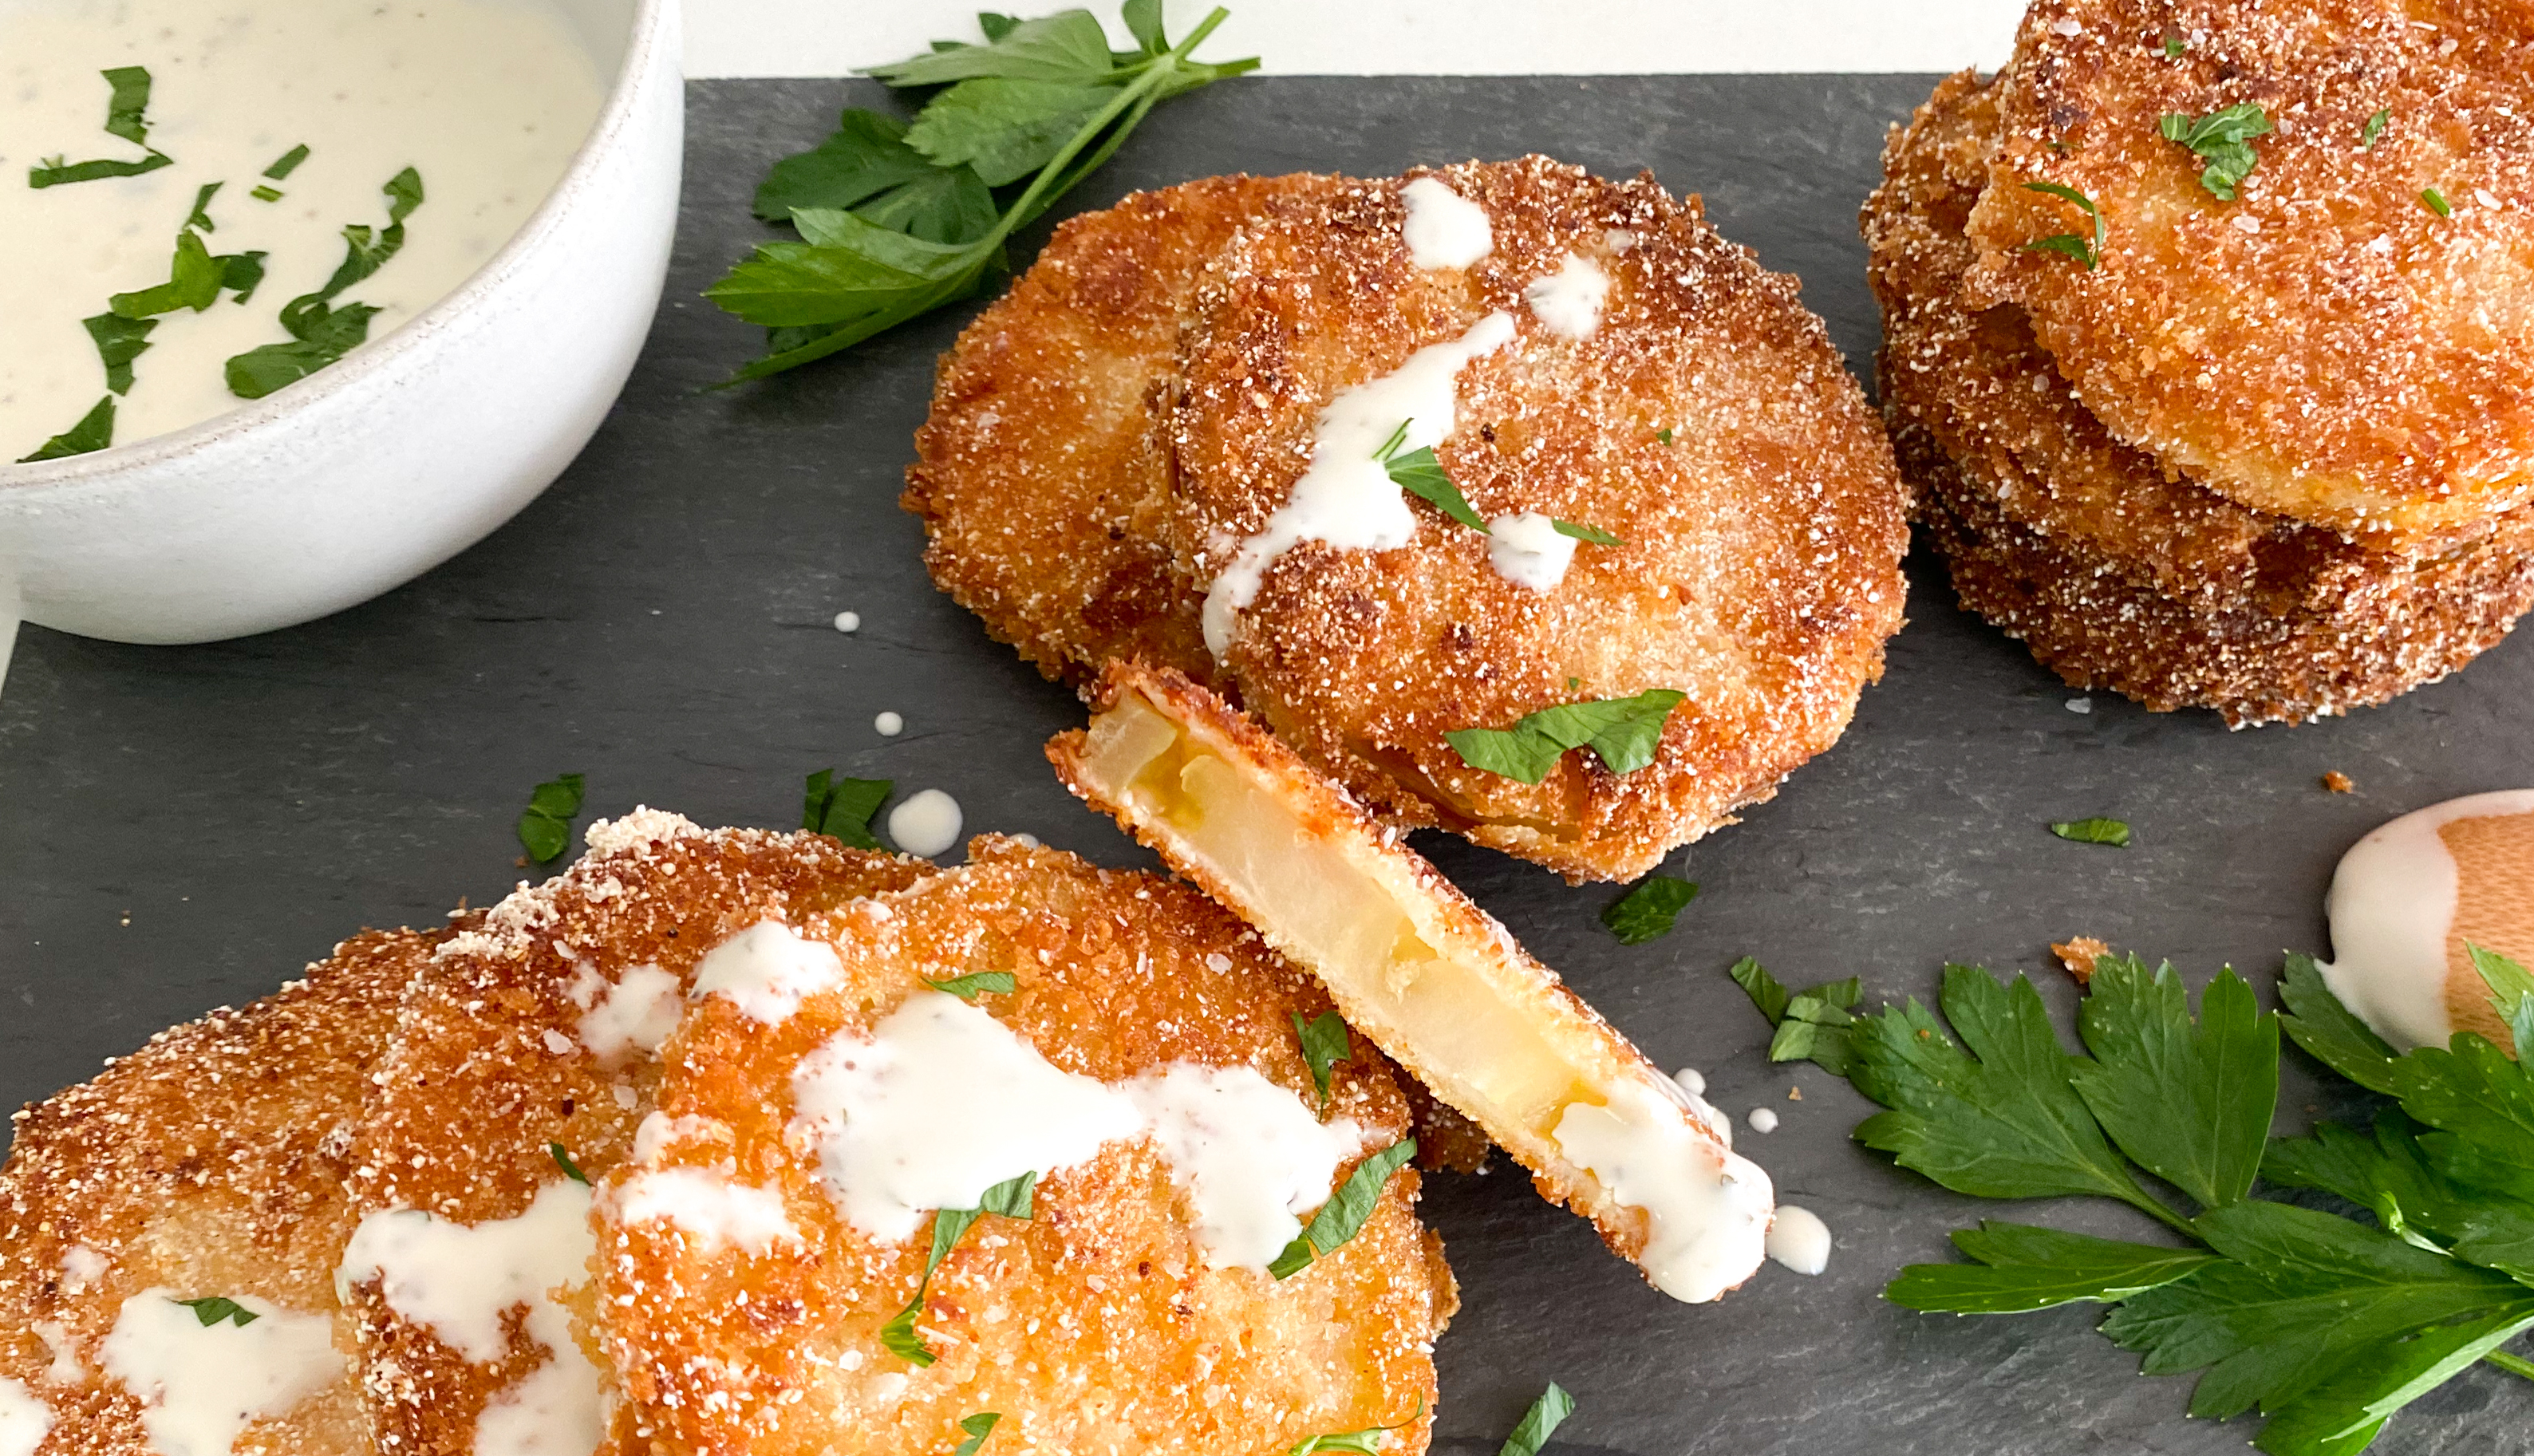 Summertime Fried Green Tomatoes